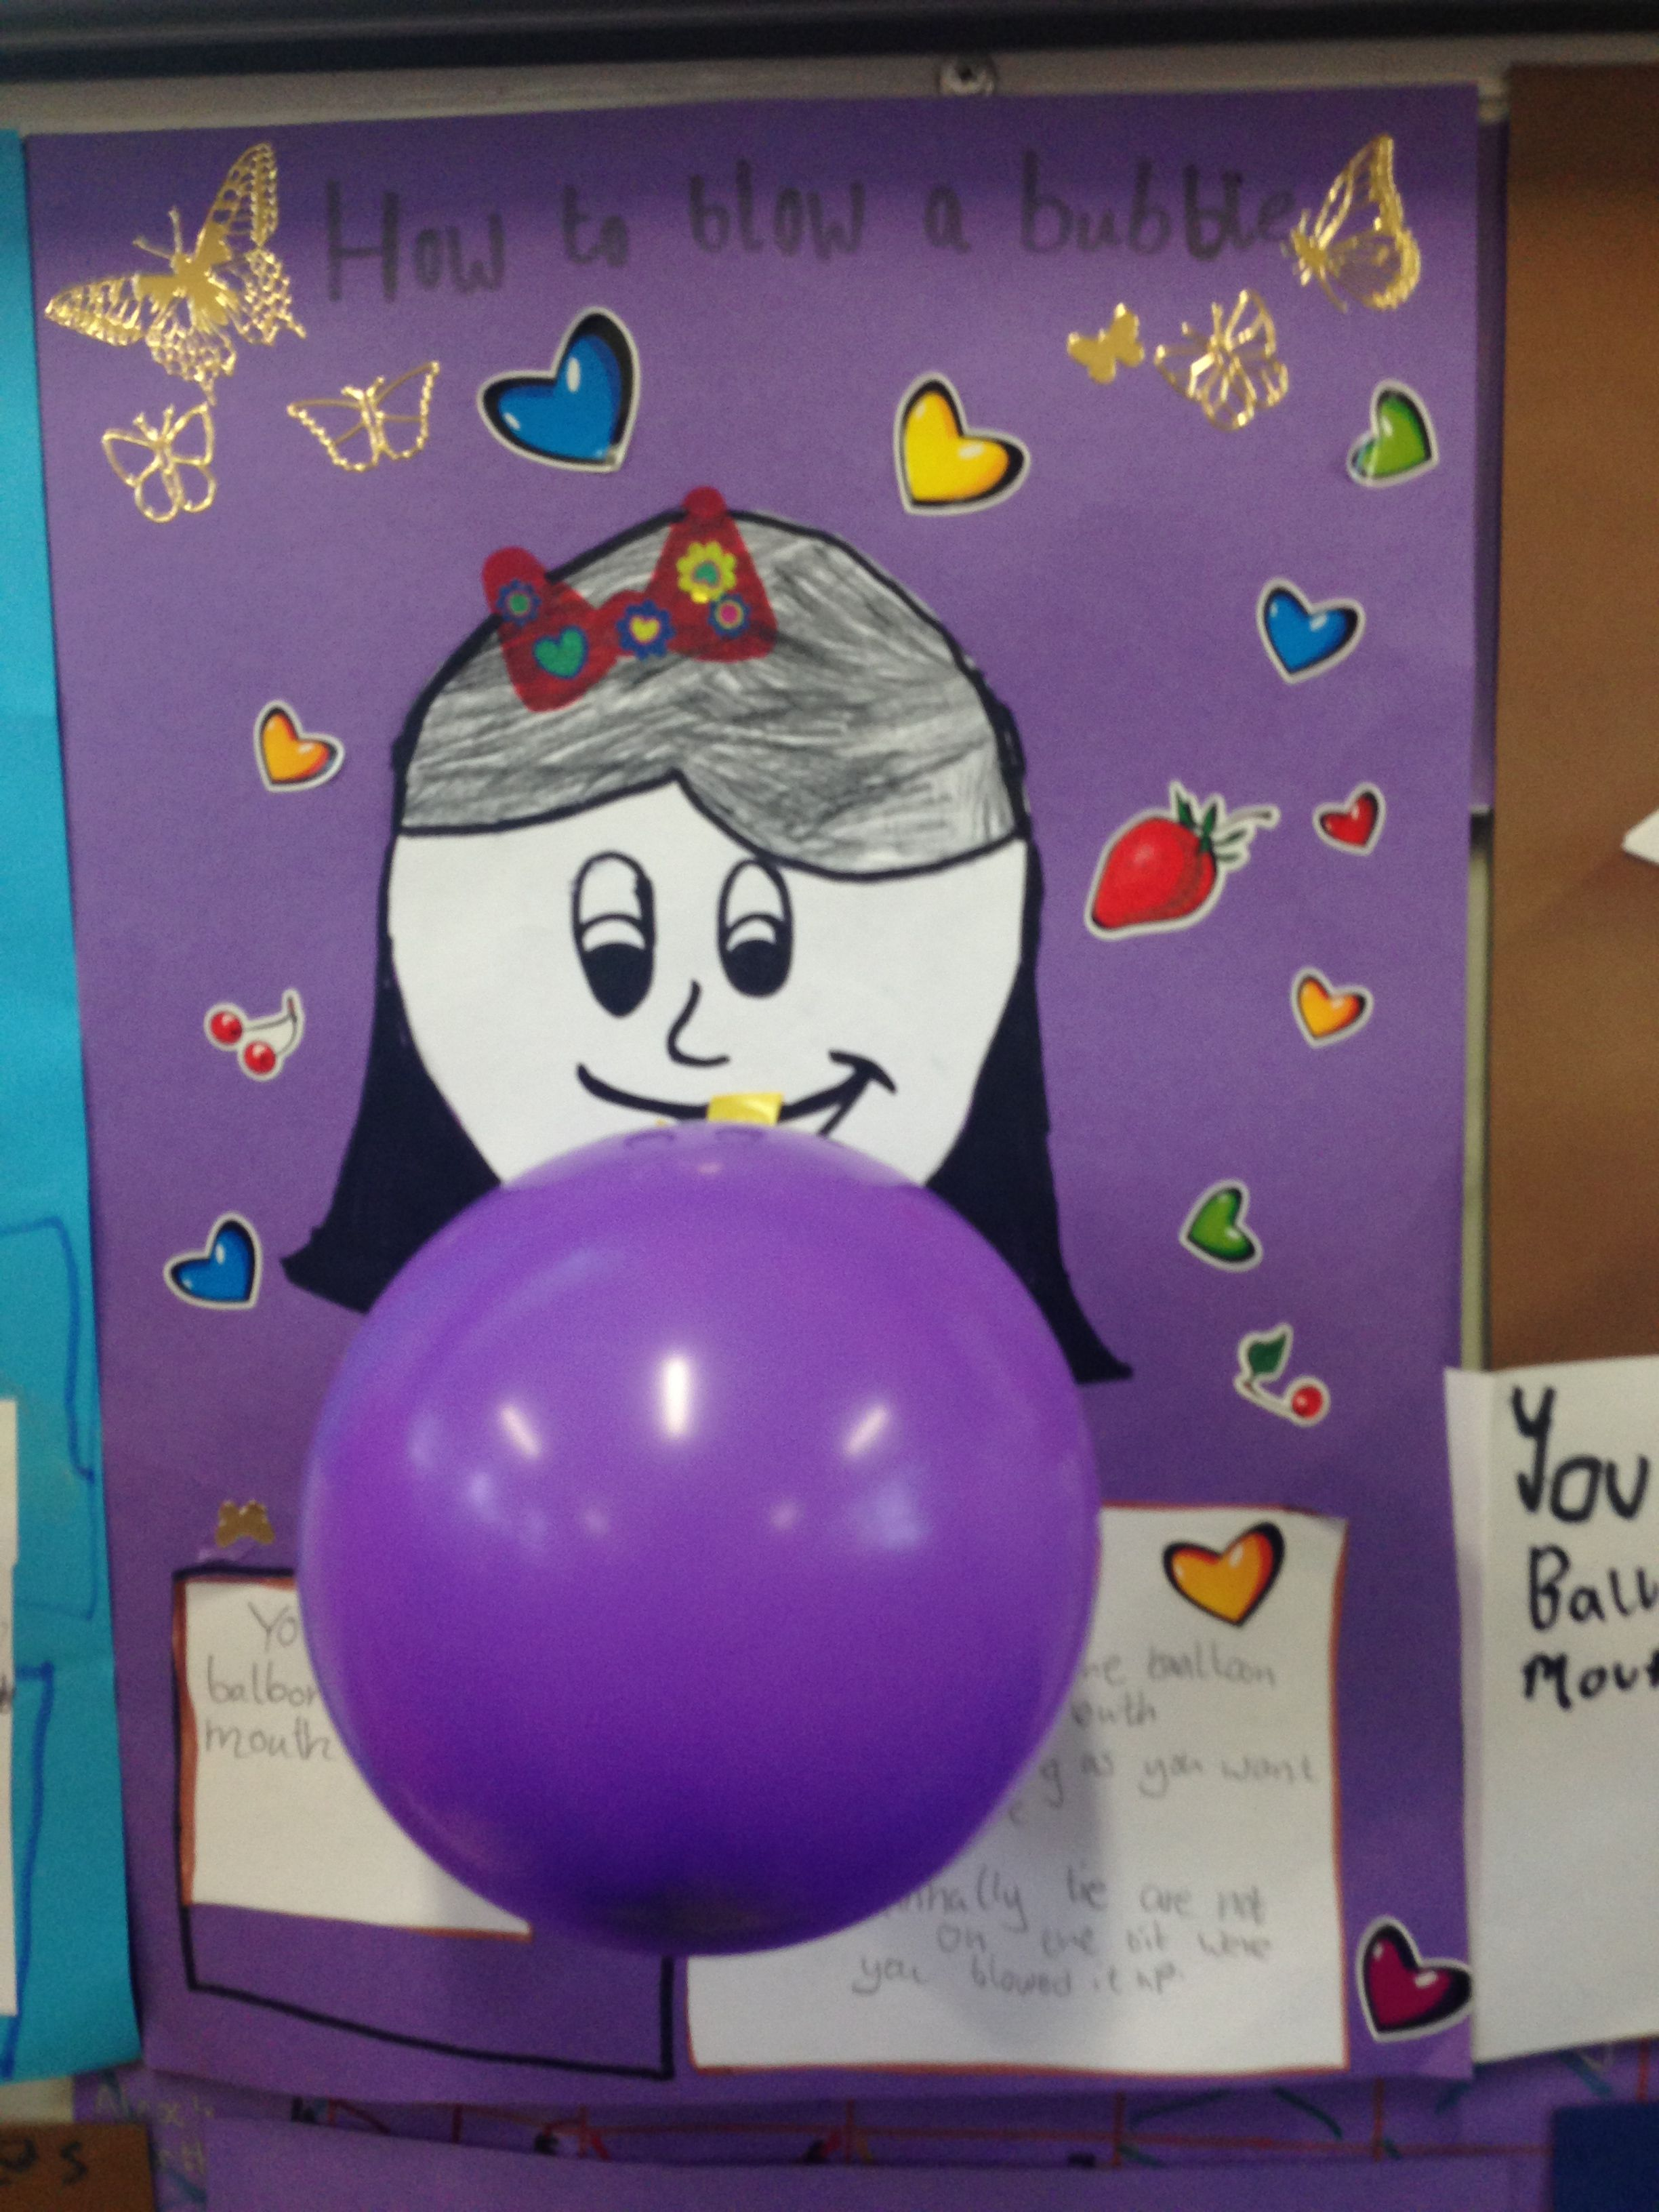 How To Blow A Balloon Procedural Text